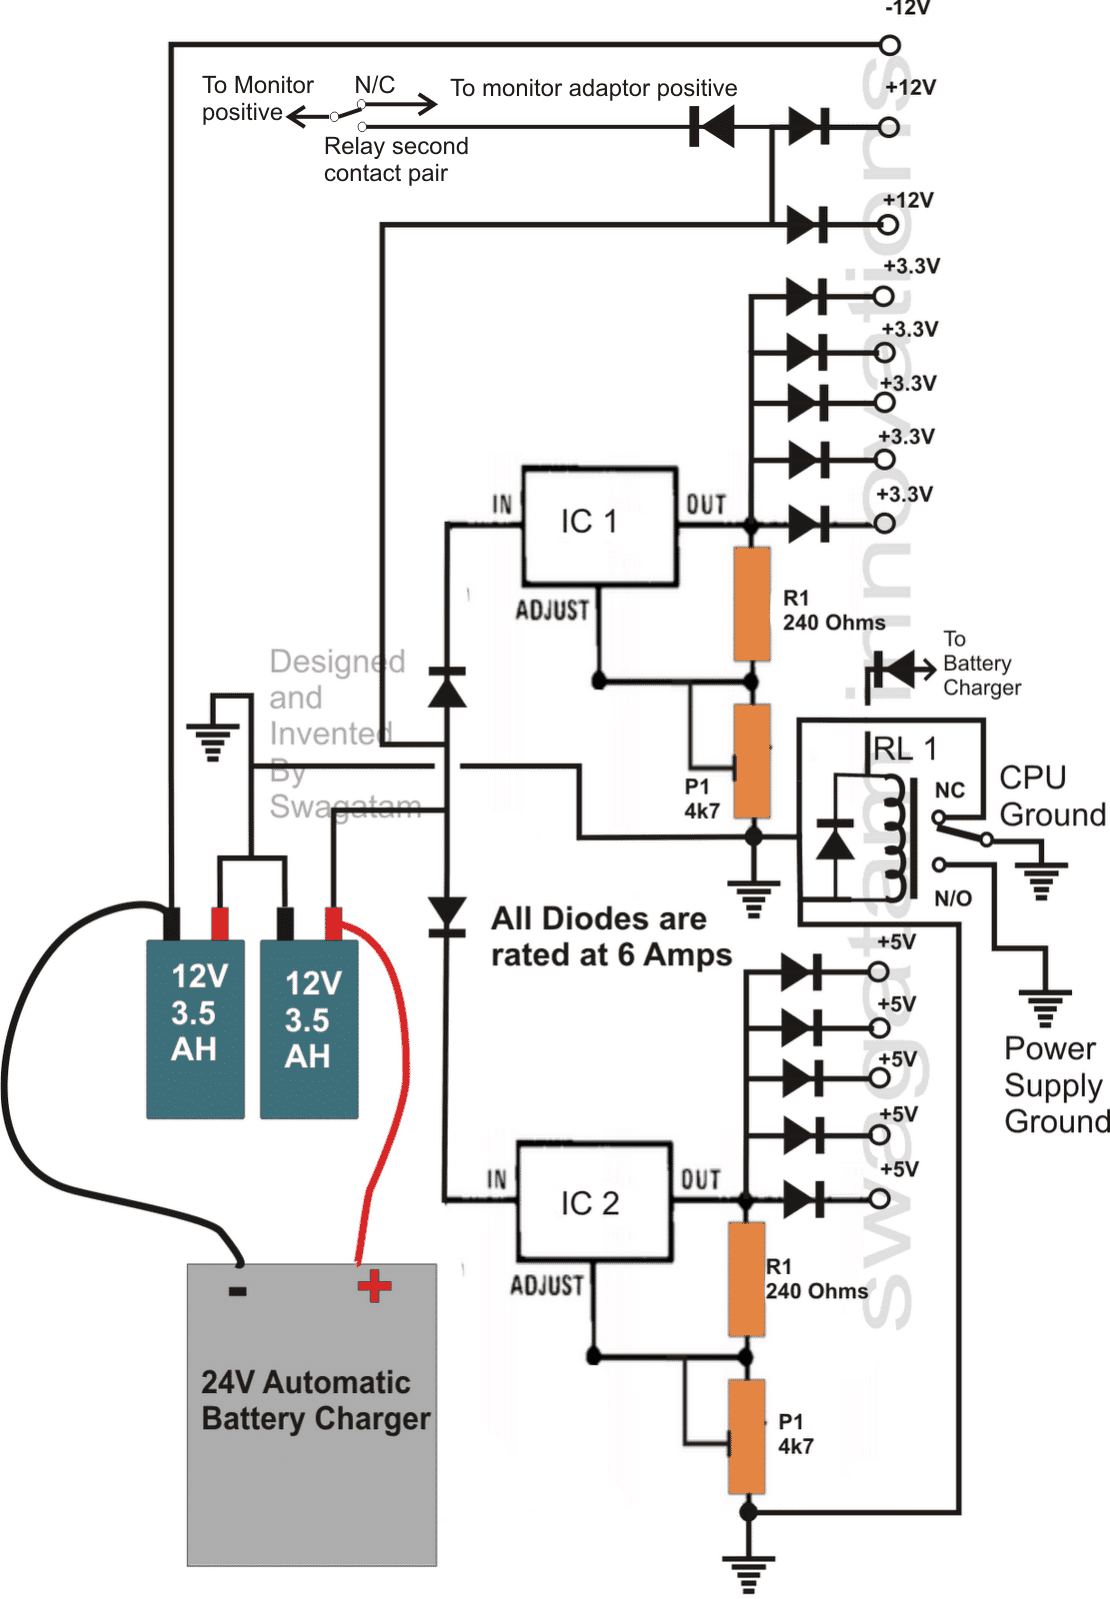 Transformerless UPS Circuit for Computers (CPU) | Homemade Circuit on ups battery, ups power supply schematic, ups design schematic, ups transformer schematic,